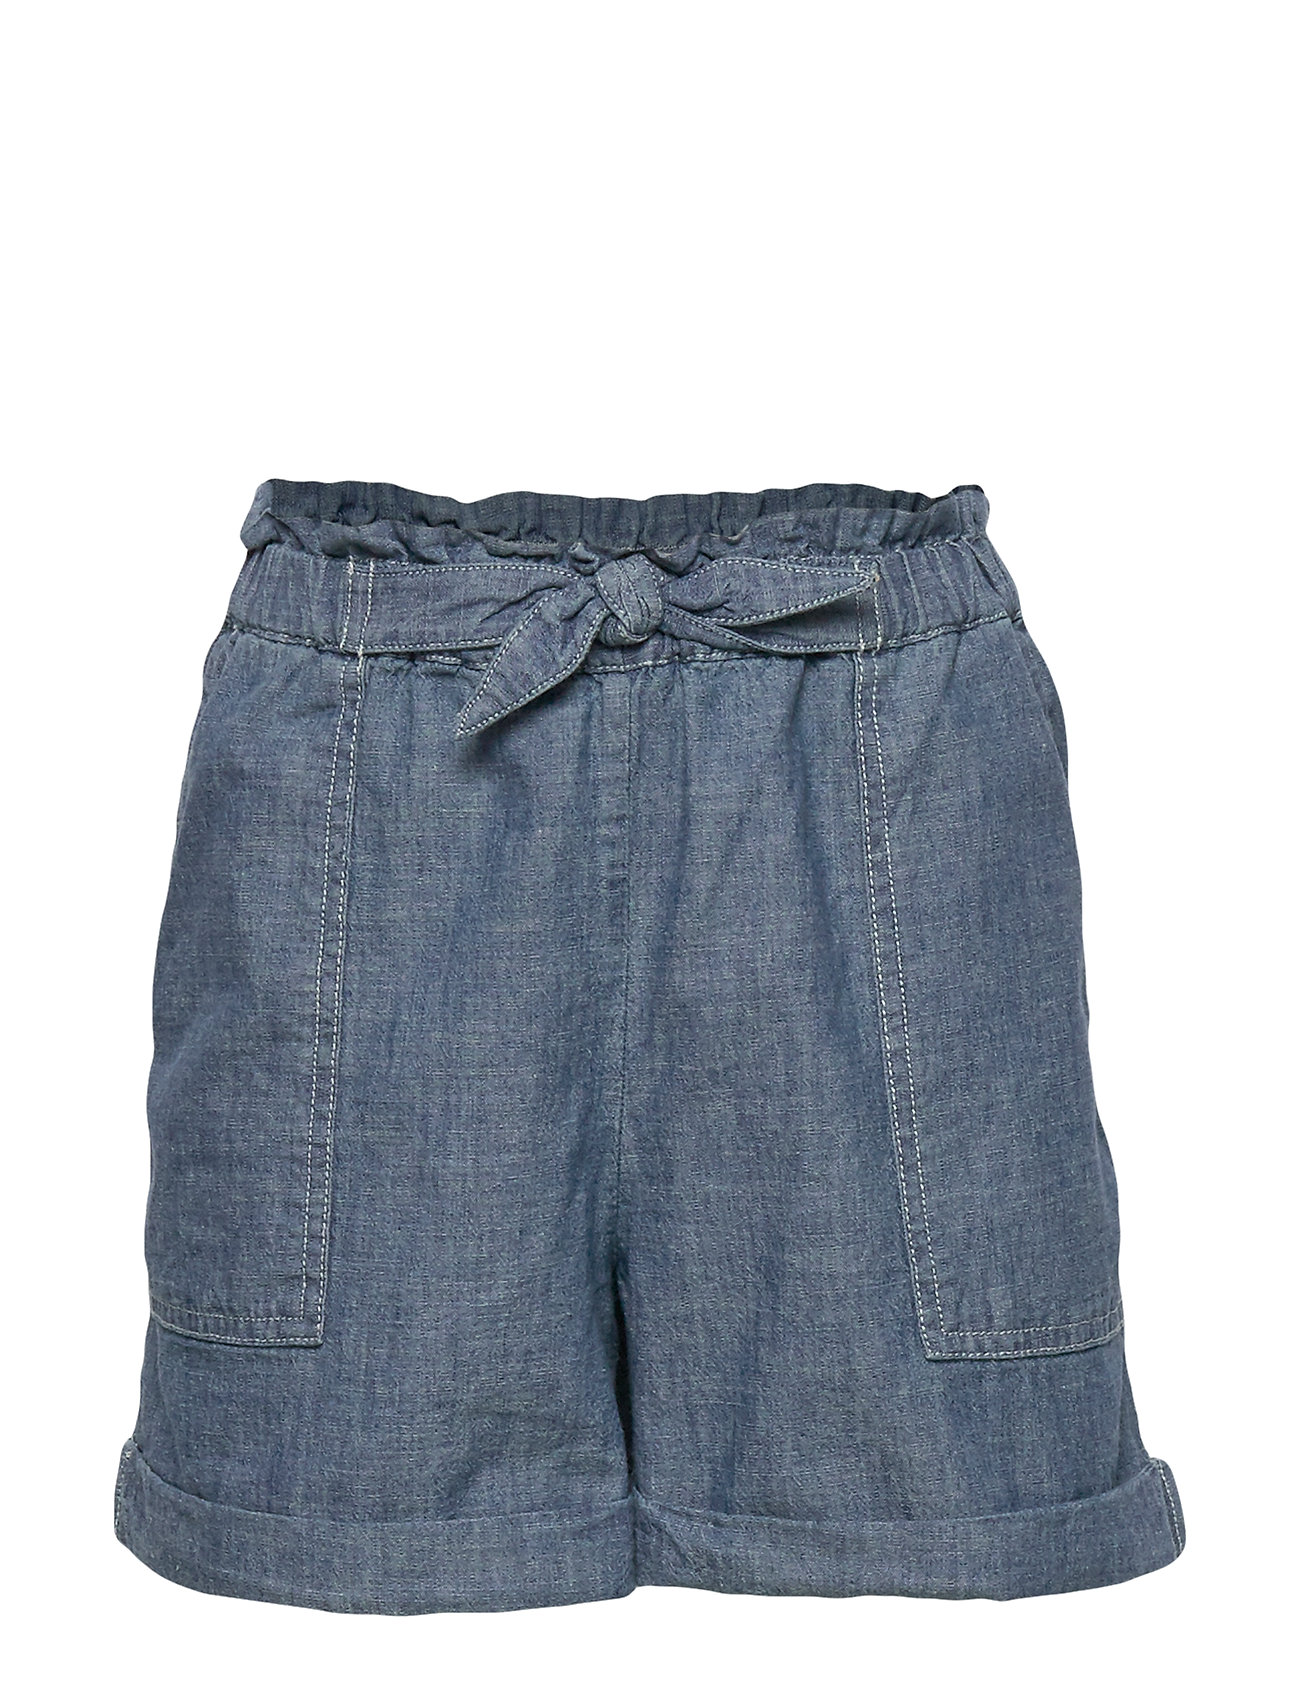 Ralph Lauren Kids Cotton Chambray Camp Short - INDIGO